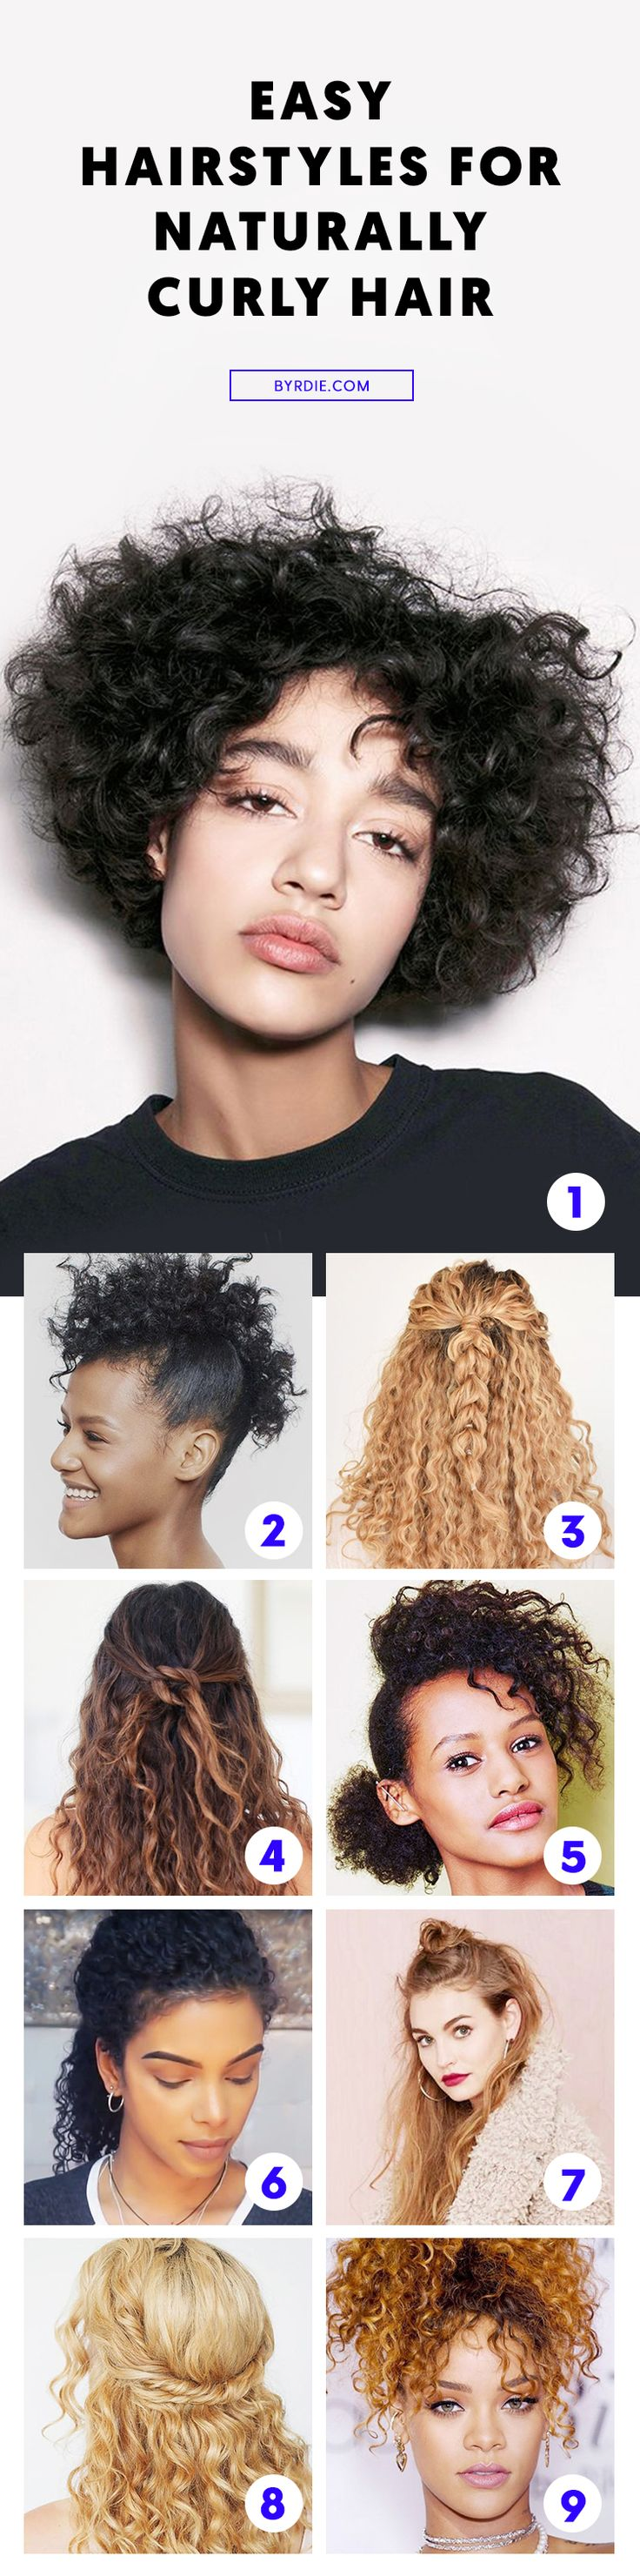 Easy hairstyles for curly hair...